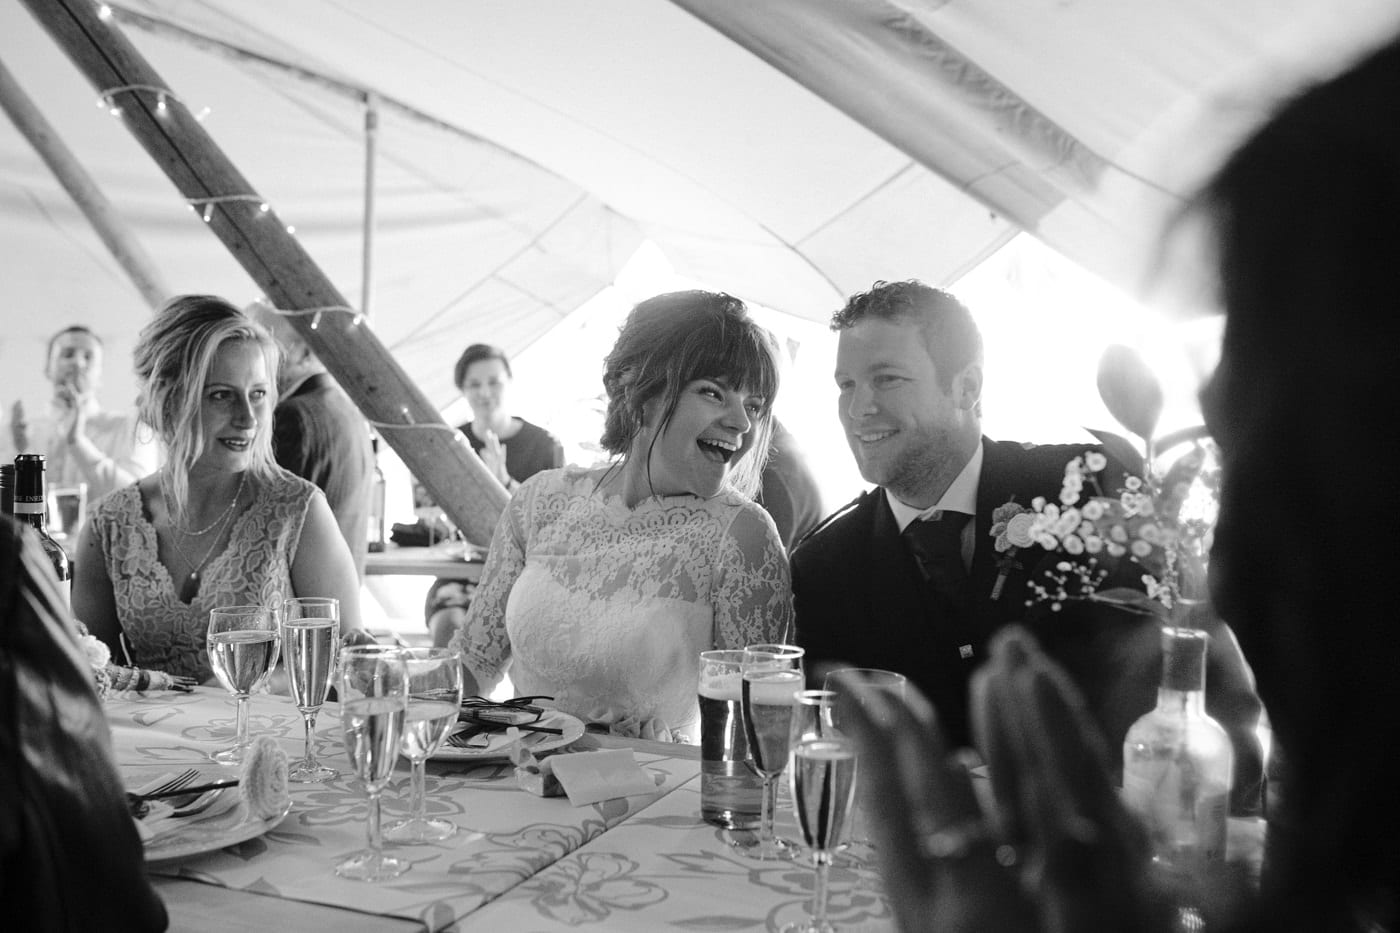 Bride and Groom in Tipi Tent Together, Happy and Smiling Couple Portrrait